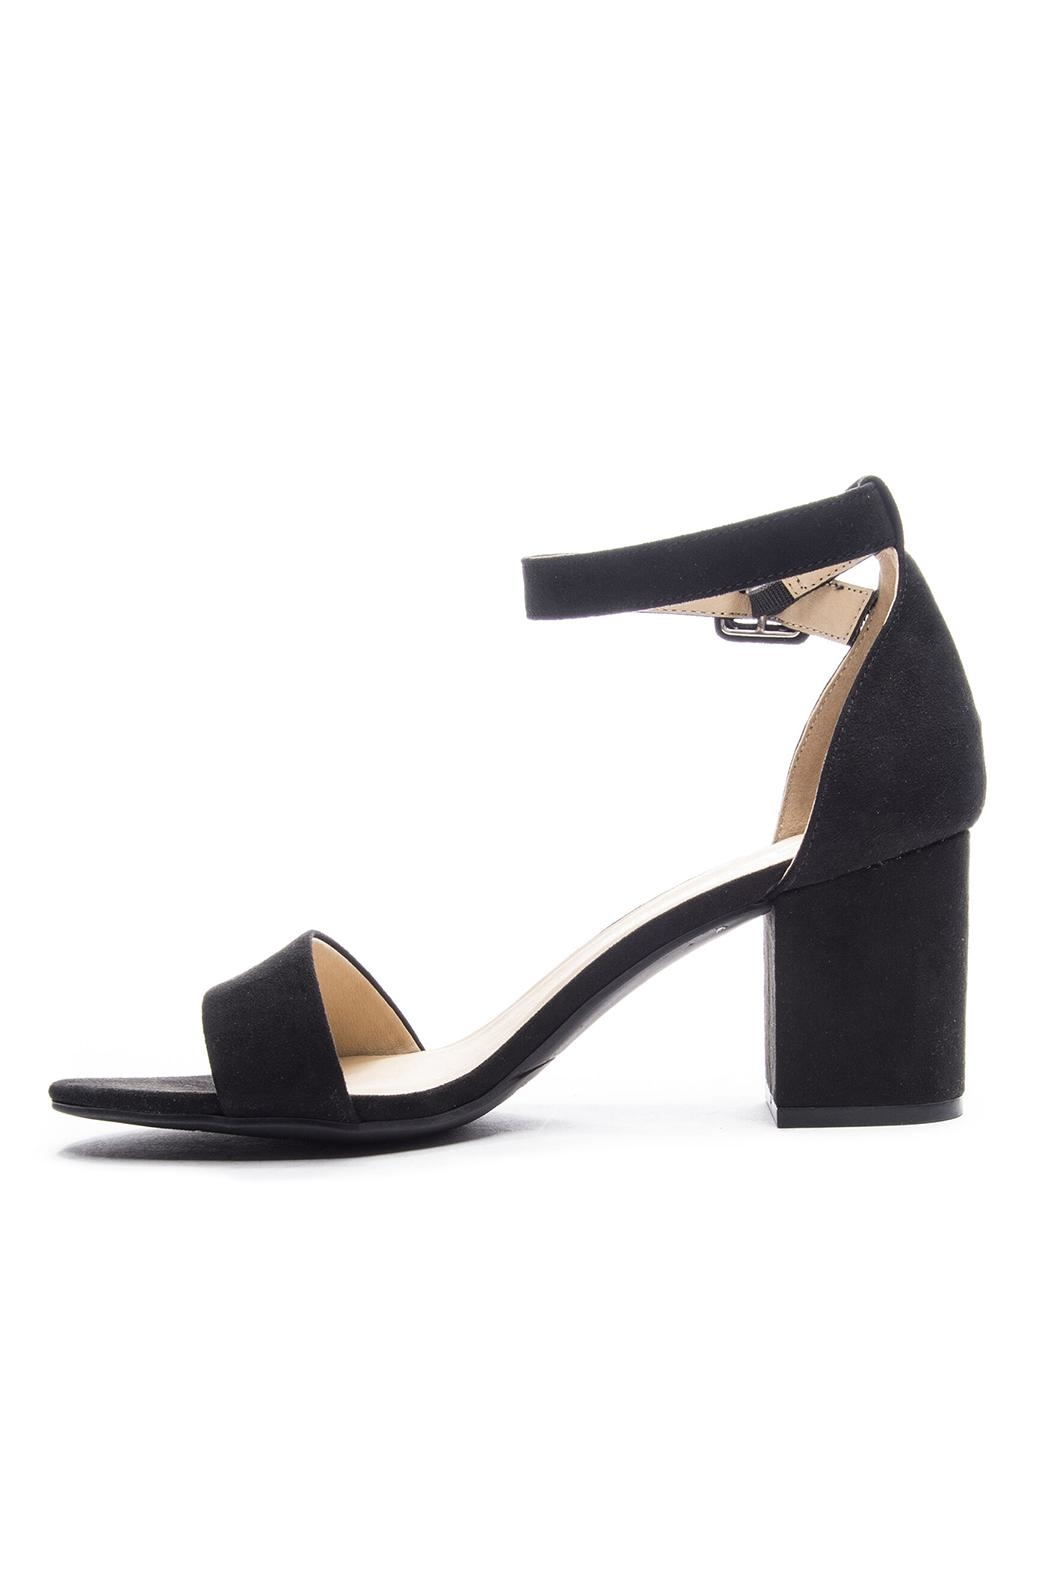 CL by Chinese Laundry Jody Block Heel - Back Cropped Image